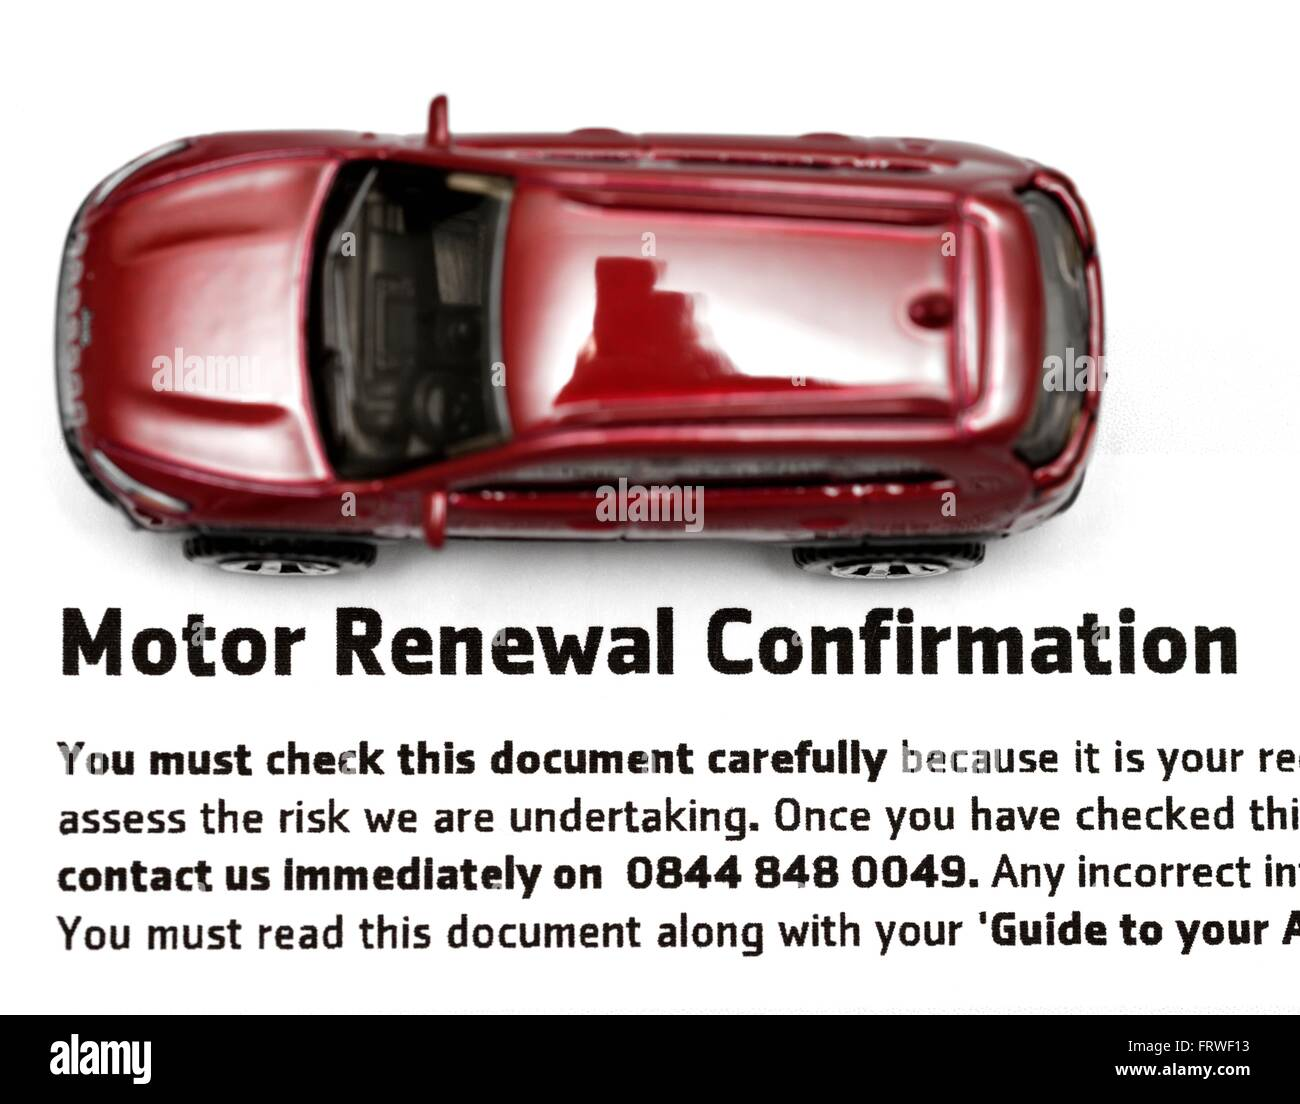 A miniature red car on a motor renewal confirmation document.. - Stock Image